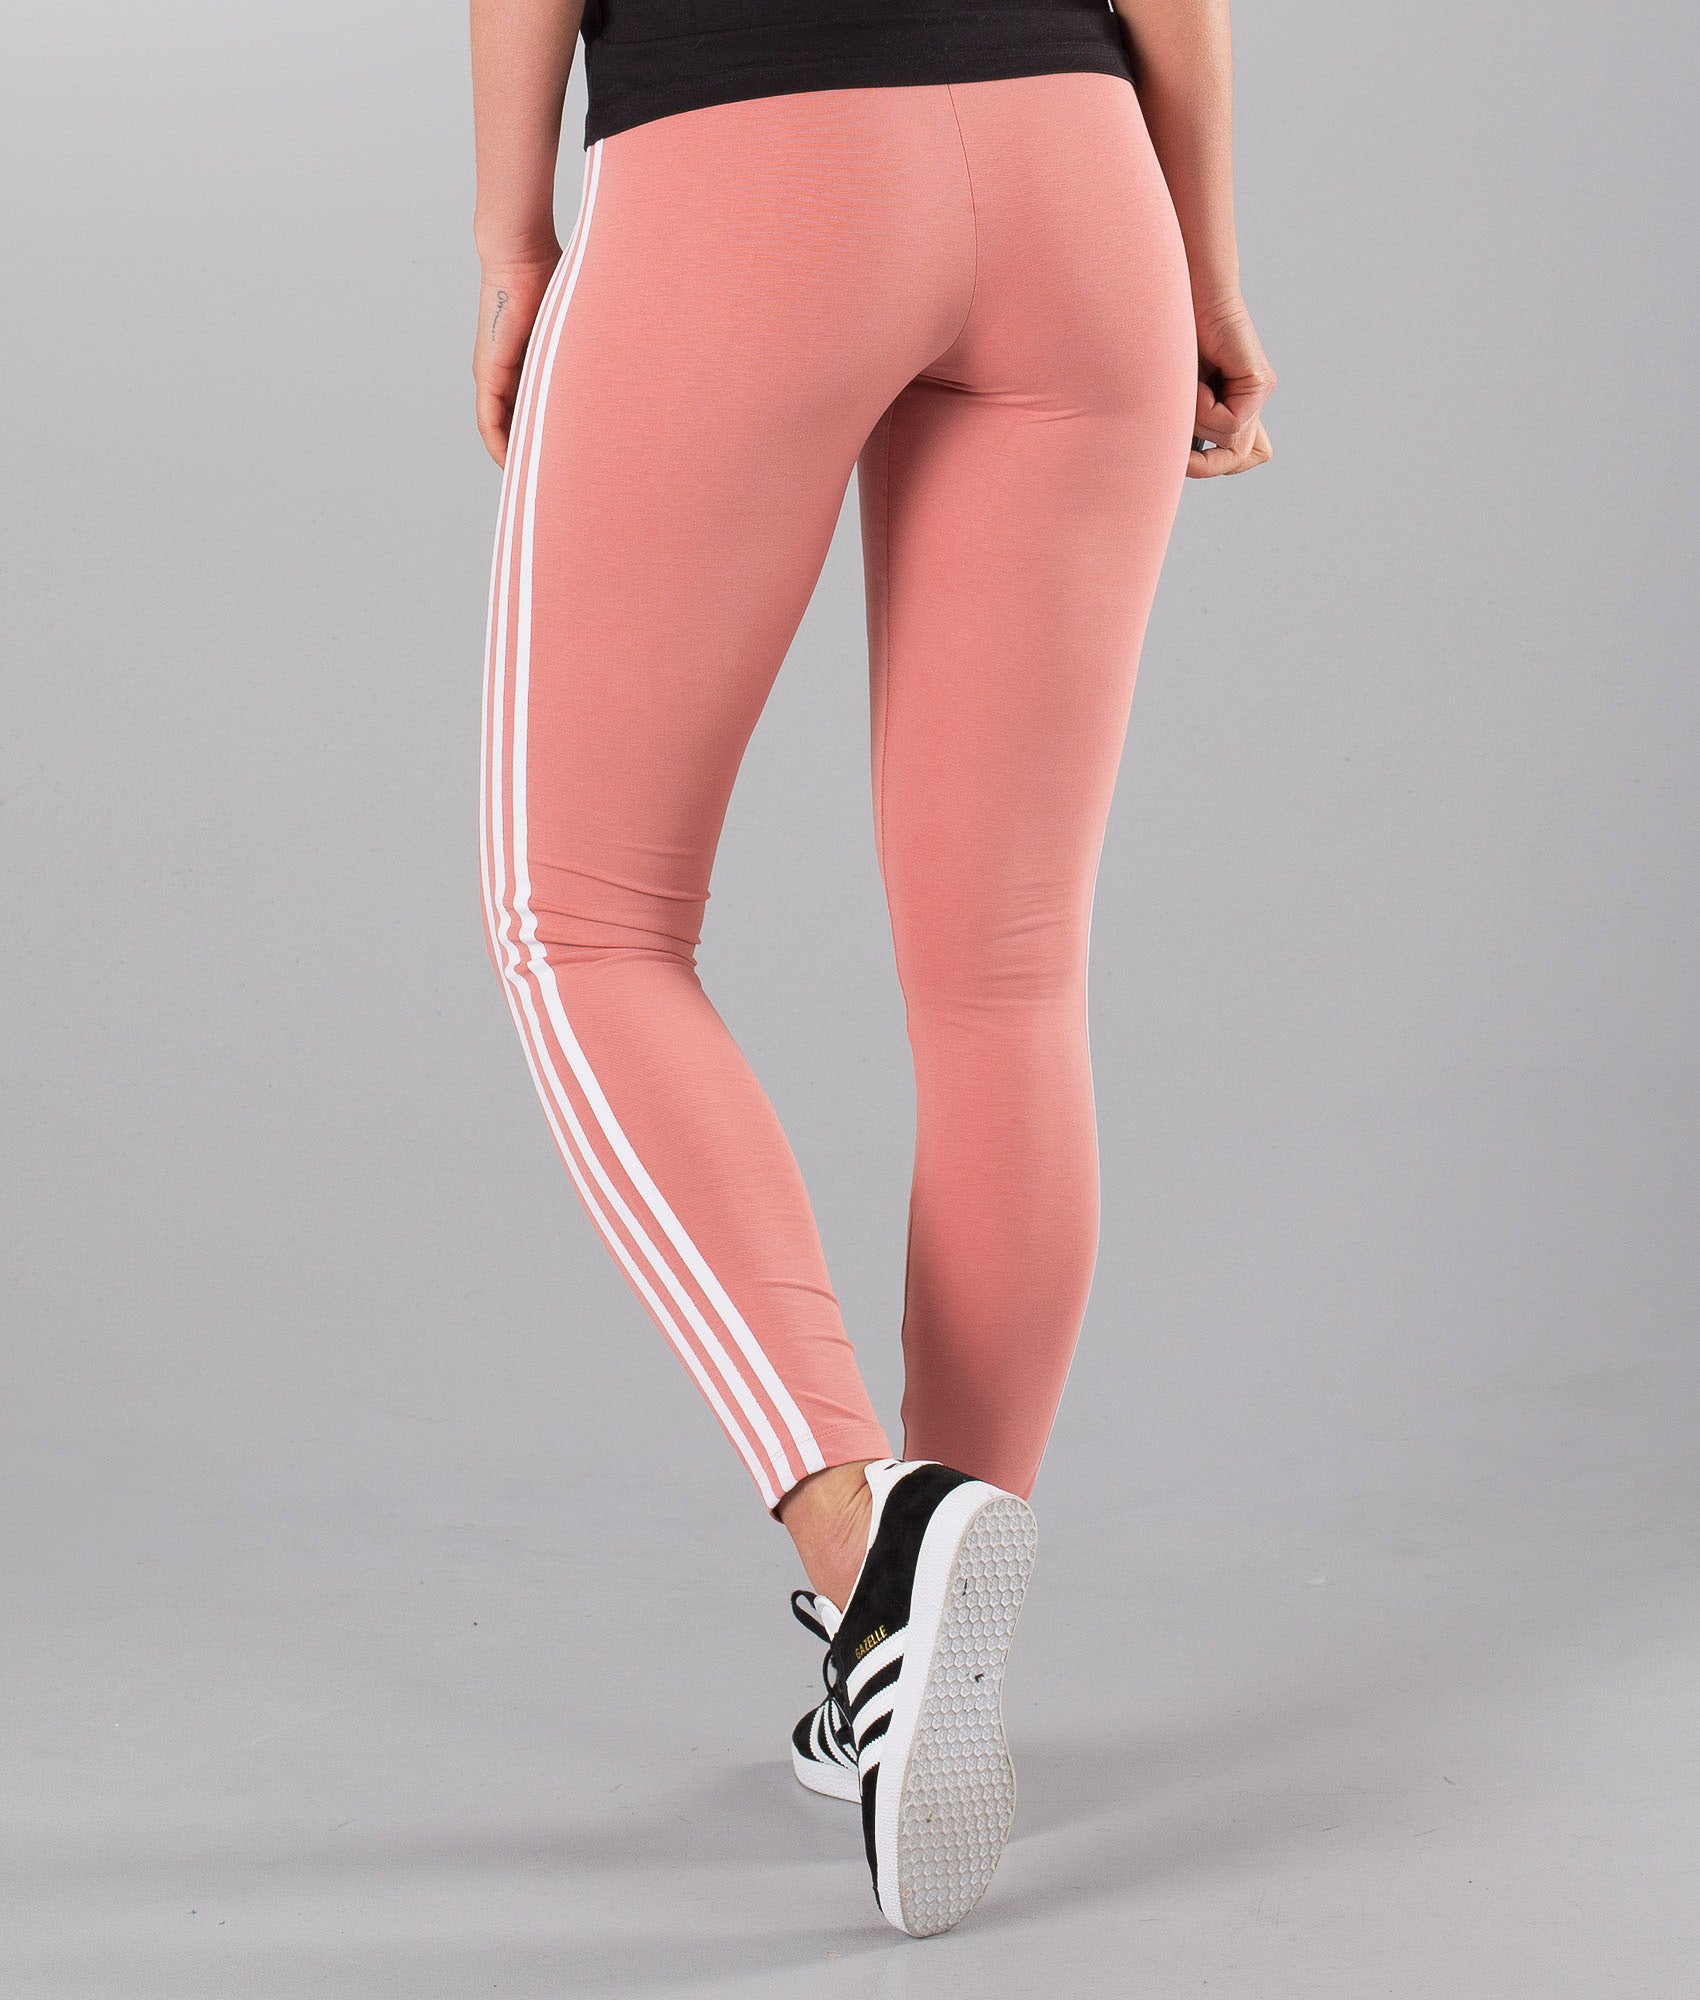 0fb66a14b15 Adidas Originals 3 Stripes Leggings Ash Pink - Ridestore.de